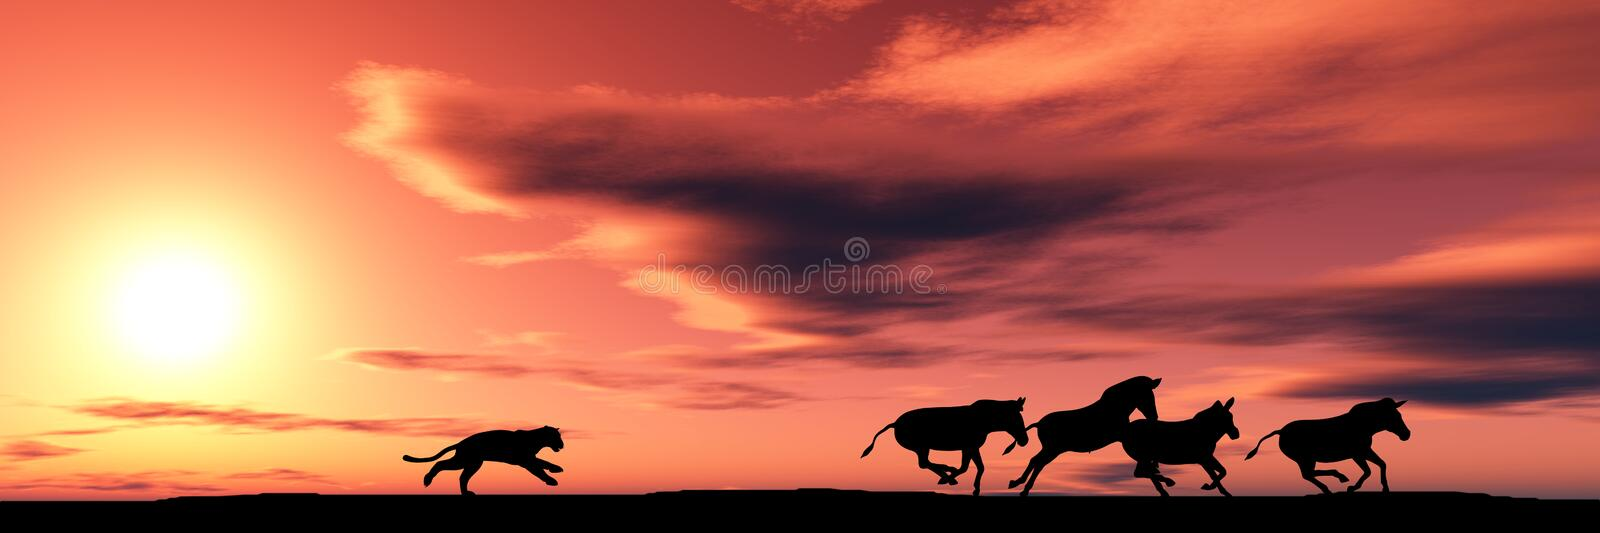 Hunting cougar. Look more images about african wildlife in my portfolio stock image